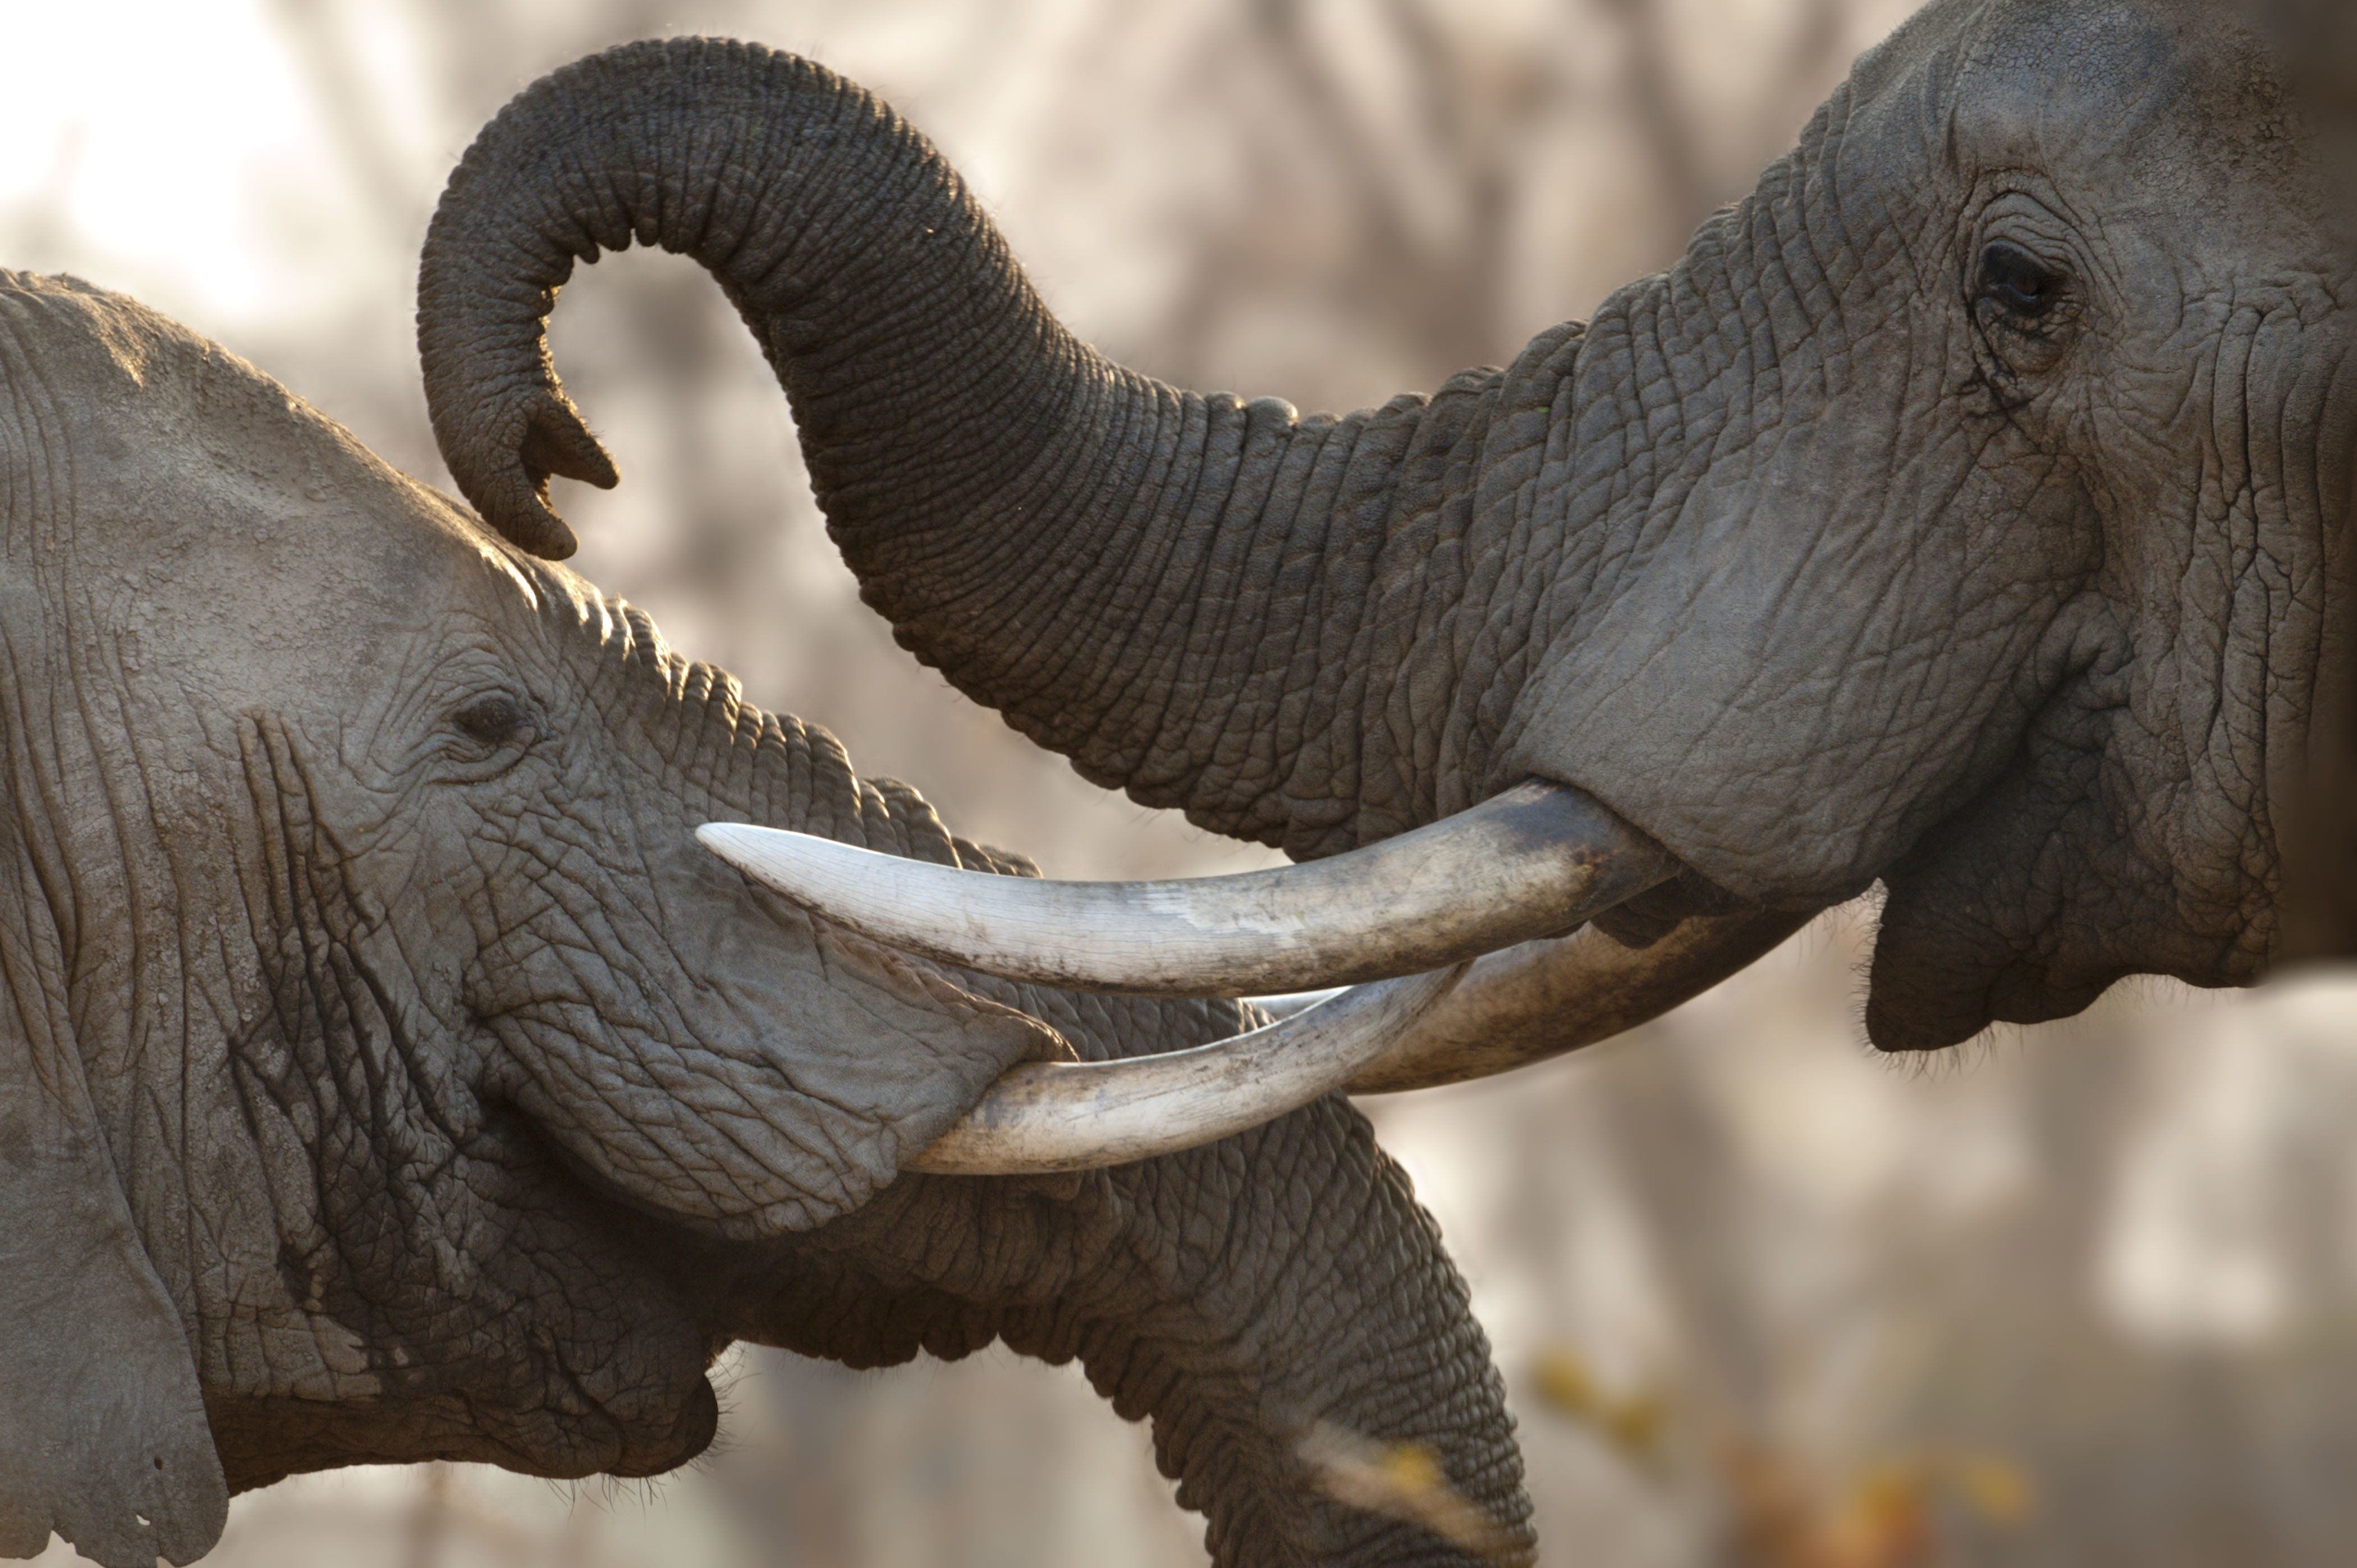 Trump Puts Elephant Trophy Decision 'On Hold' After Public